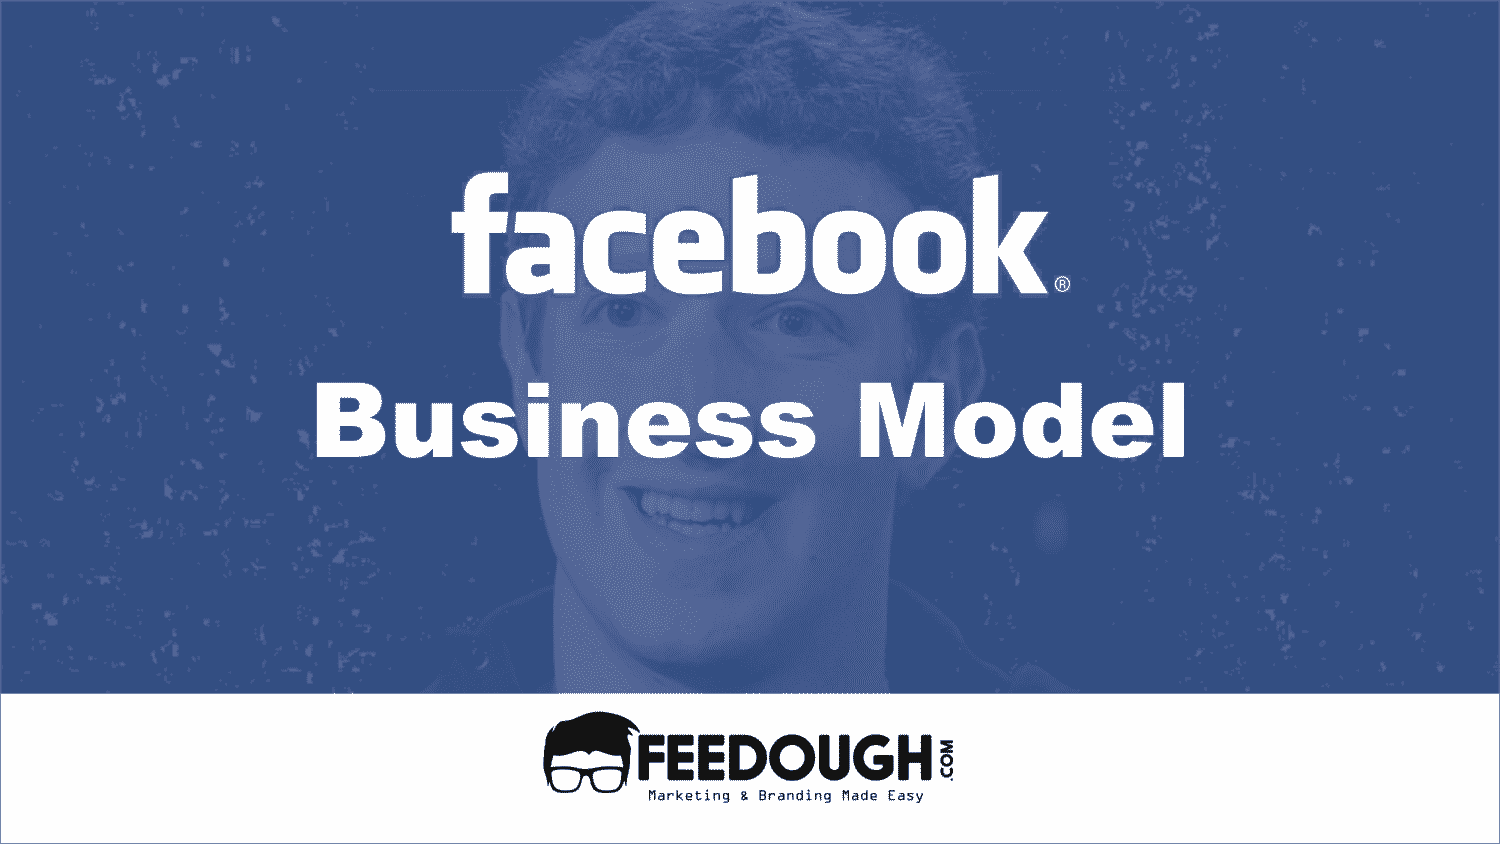 Facebook business model